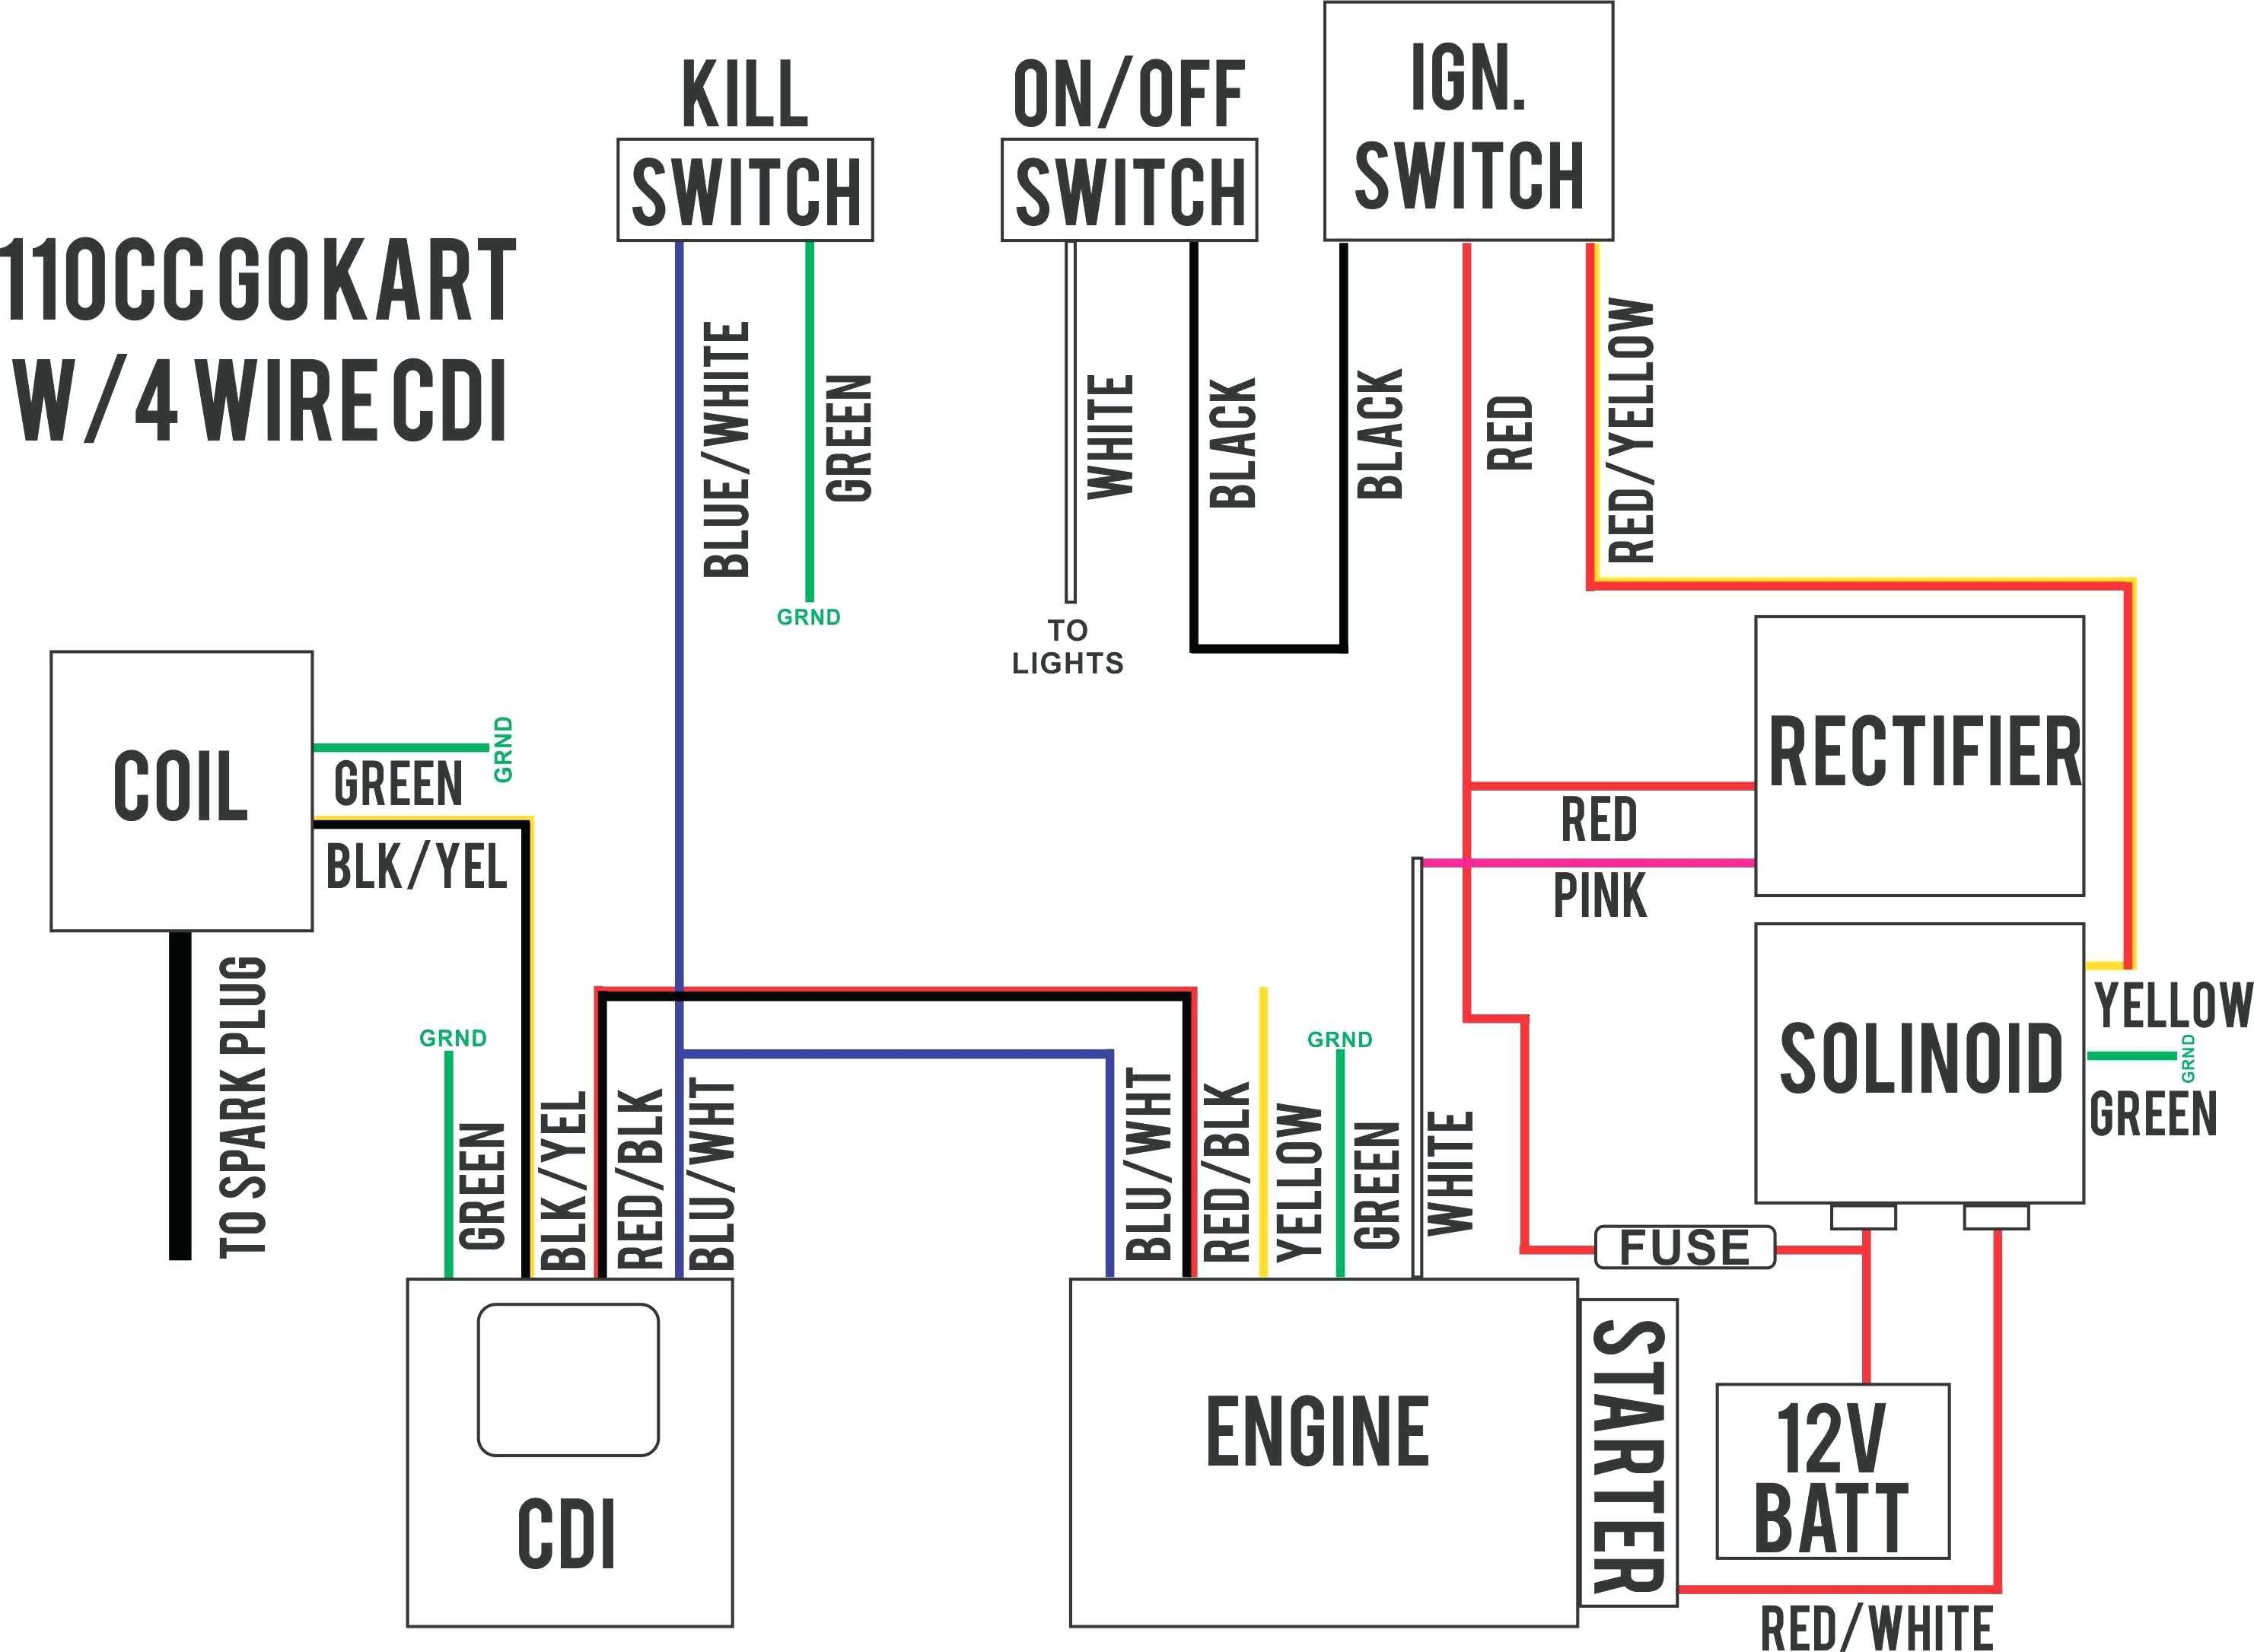 110 light switch wiring diagram